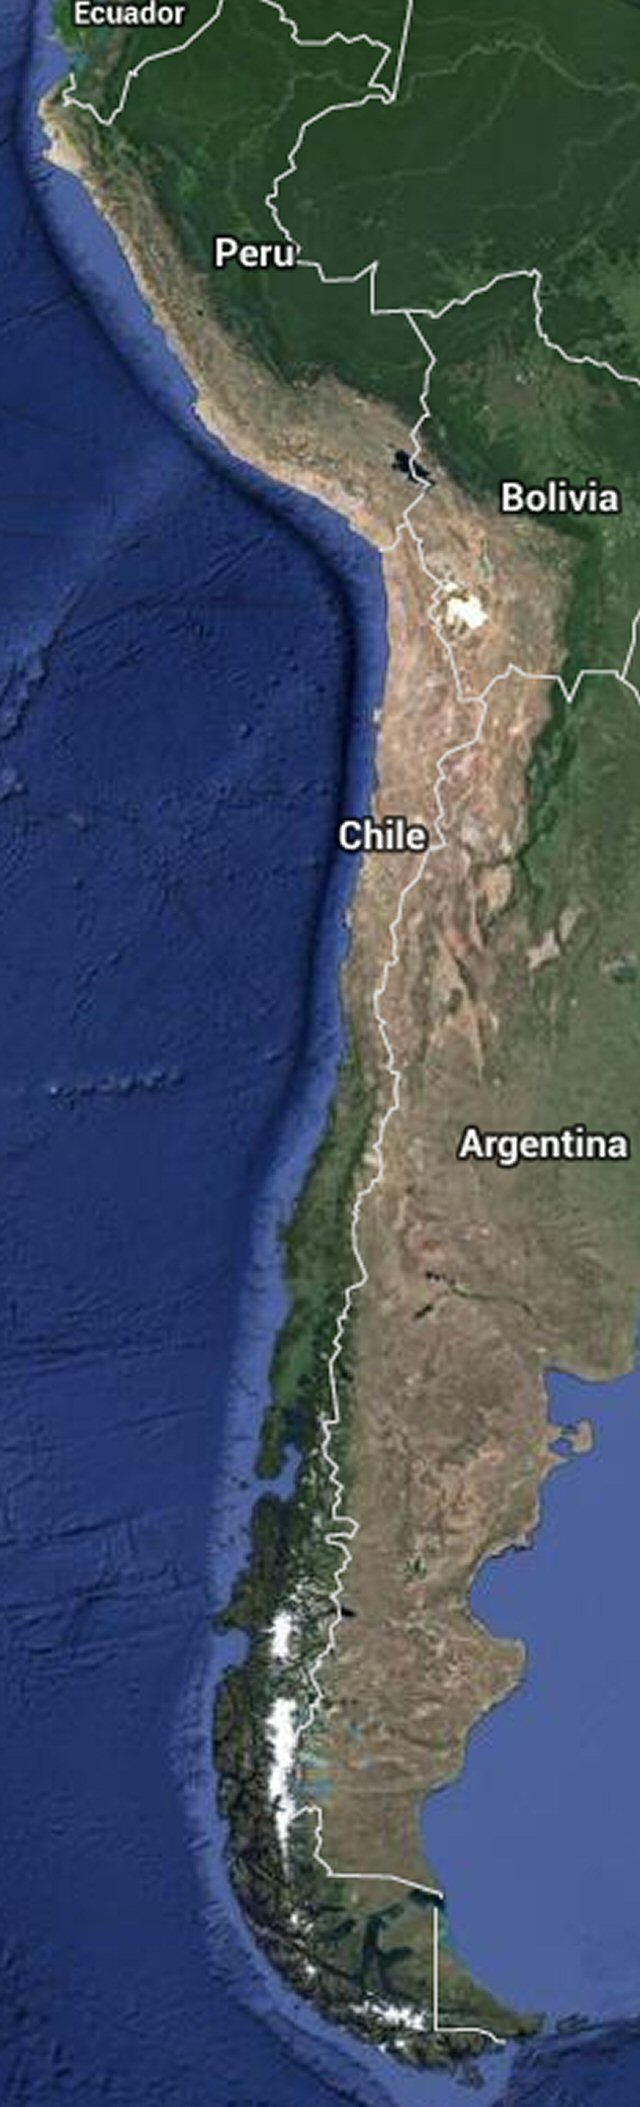 The Andes region